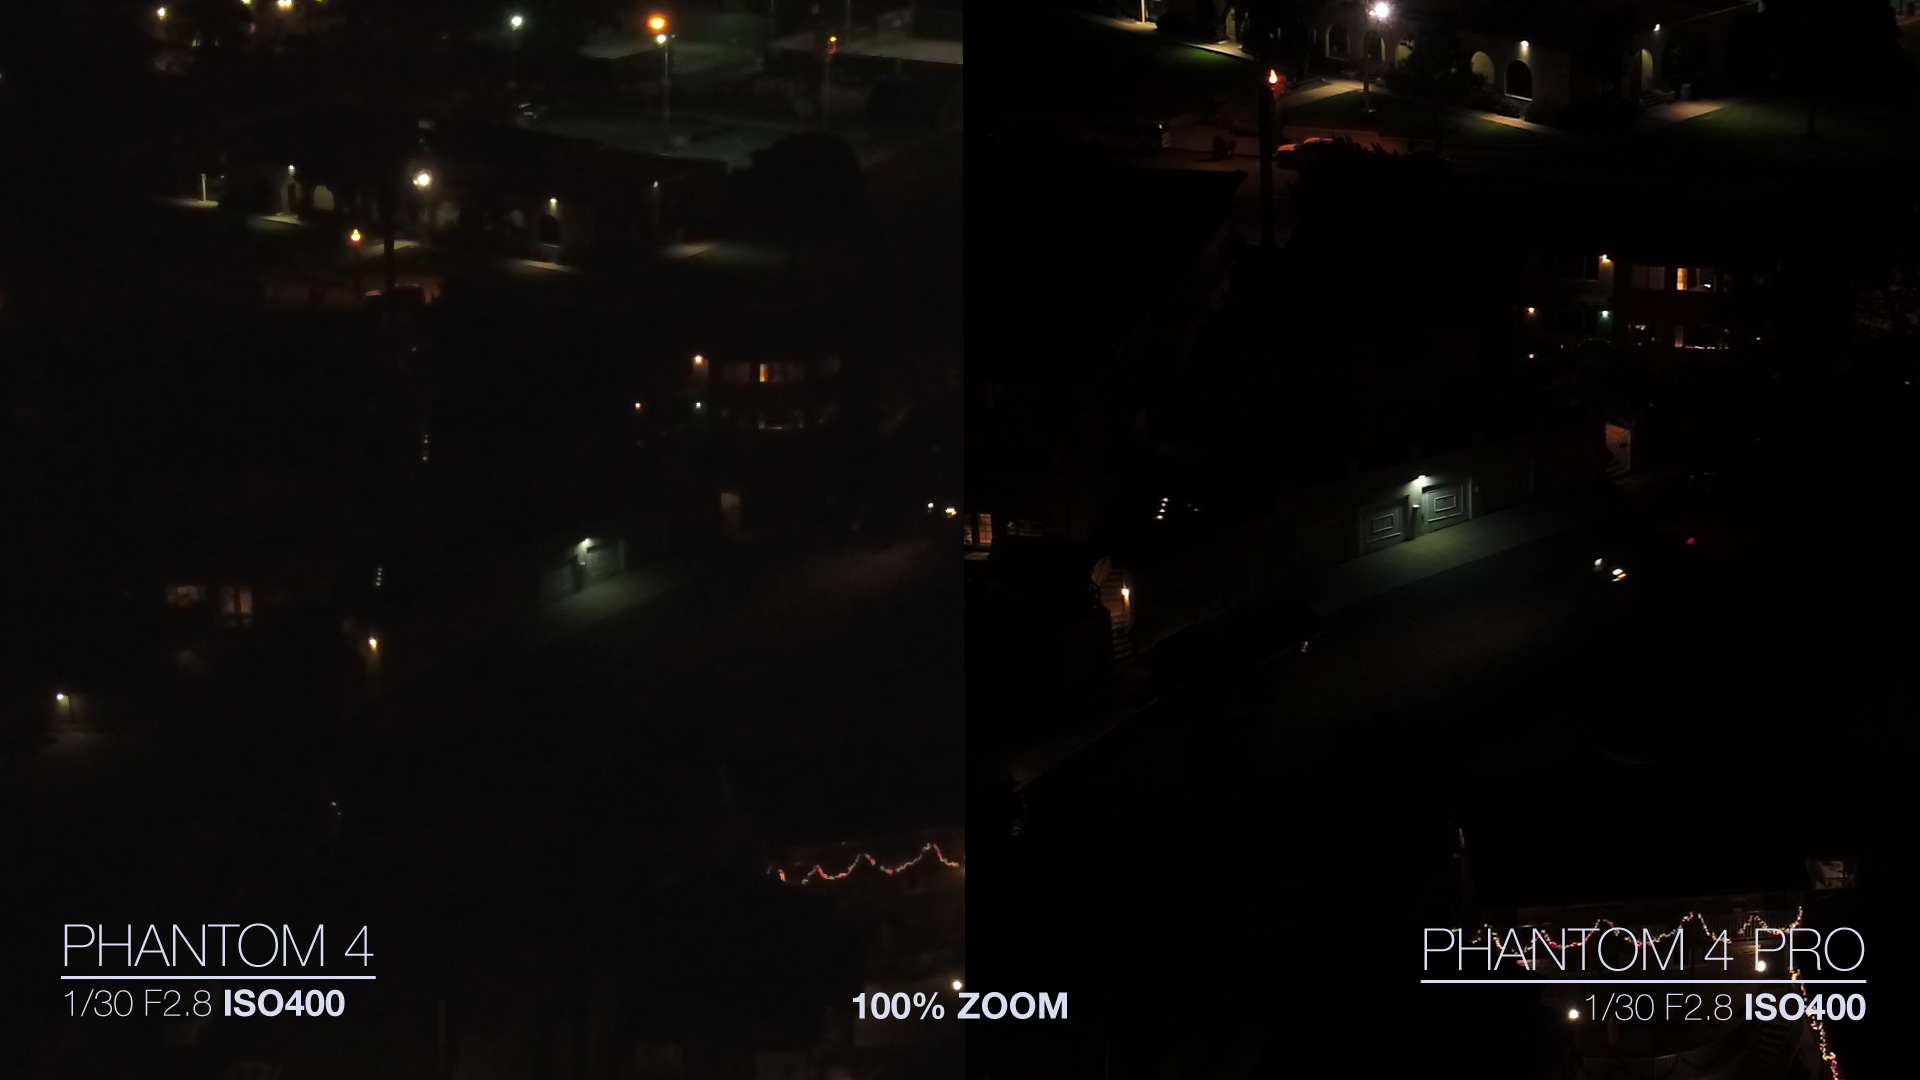 DJI Phantom 4 Pro VS Phantom 4 Low light Video ISO Comparison